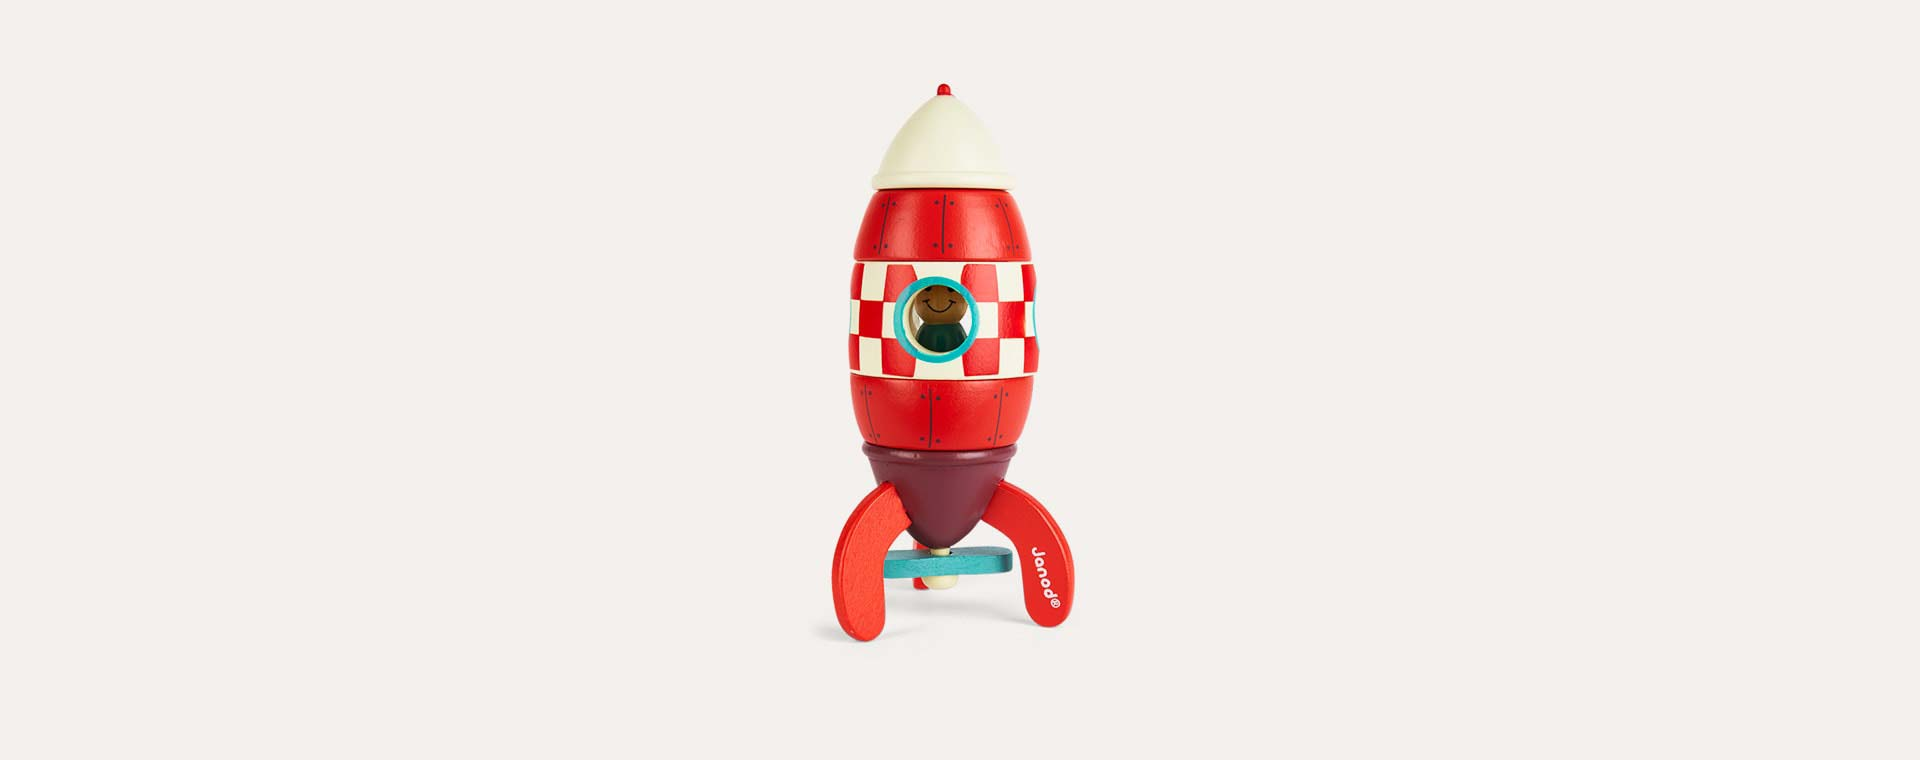 Red Janod Small Magnetic Rocket Toy